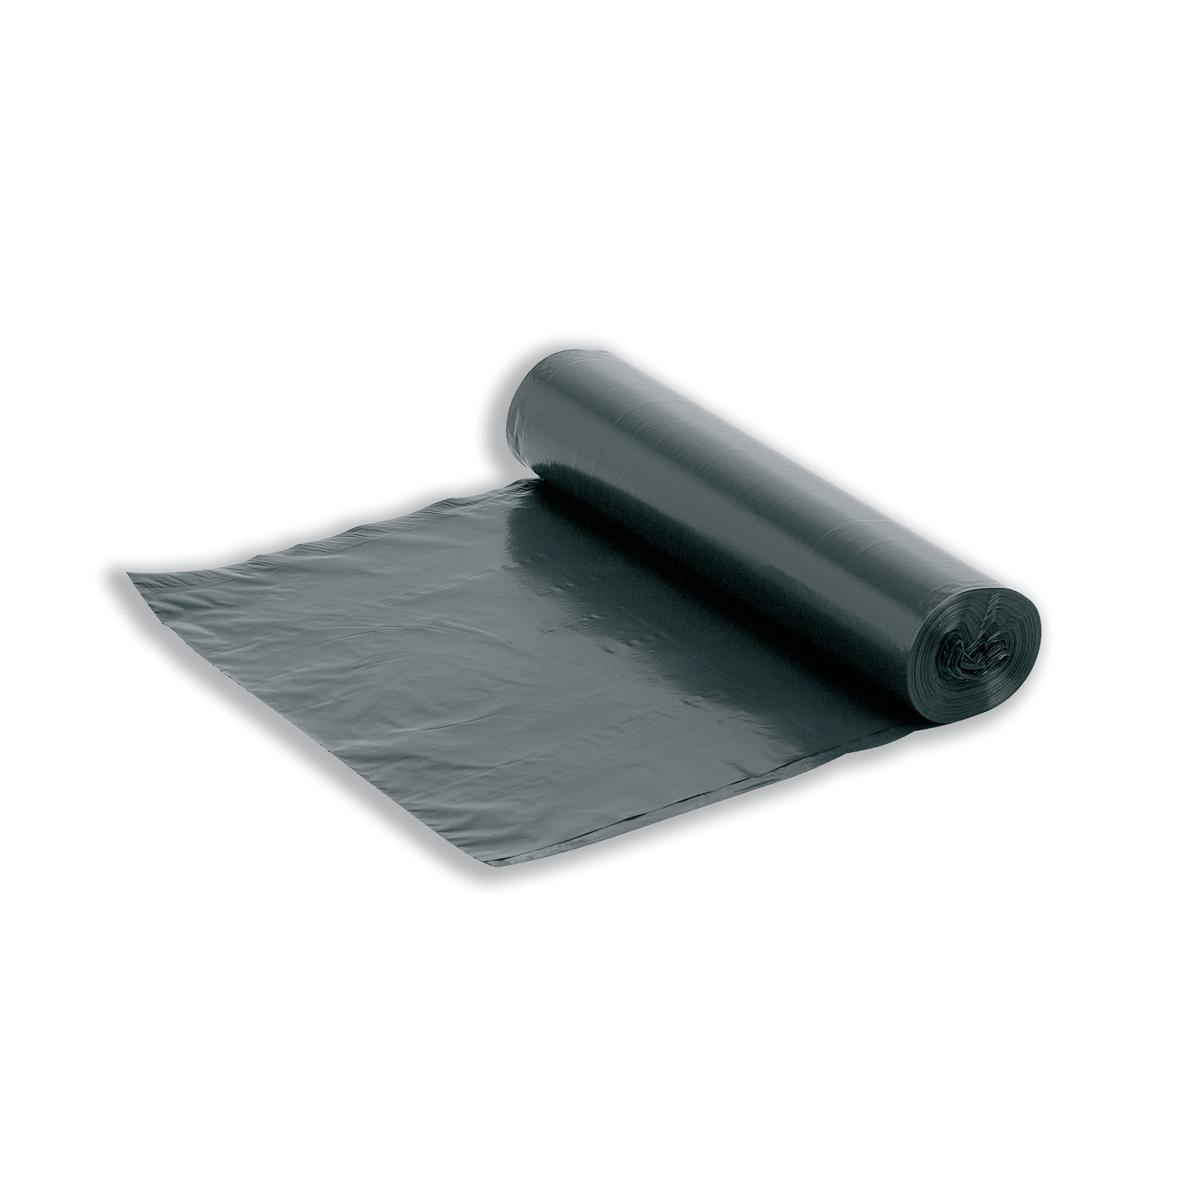 5 Star Facilities Bin Liners Medium/Heavy Duty Rolled 95 Litre Capacity W425/725xH840mm Black Roll 20